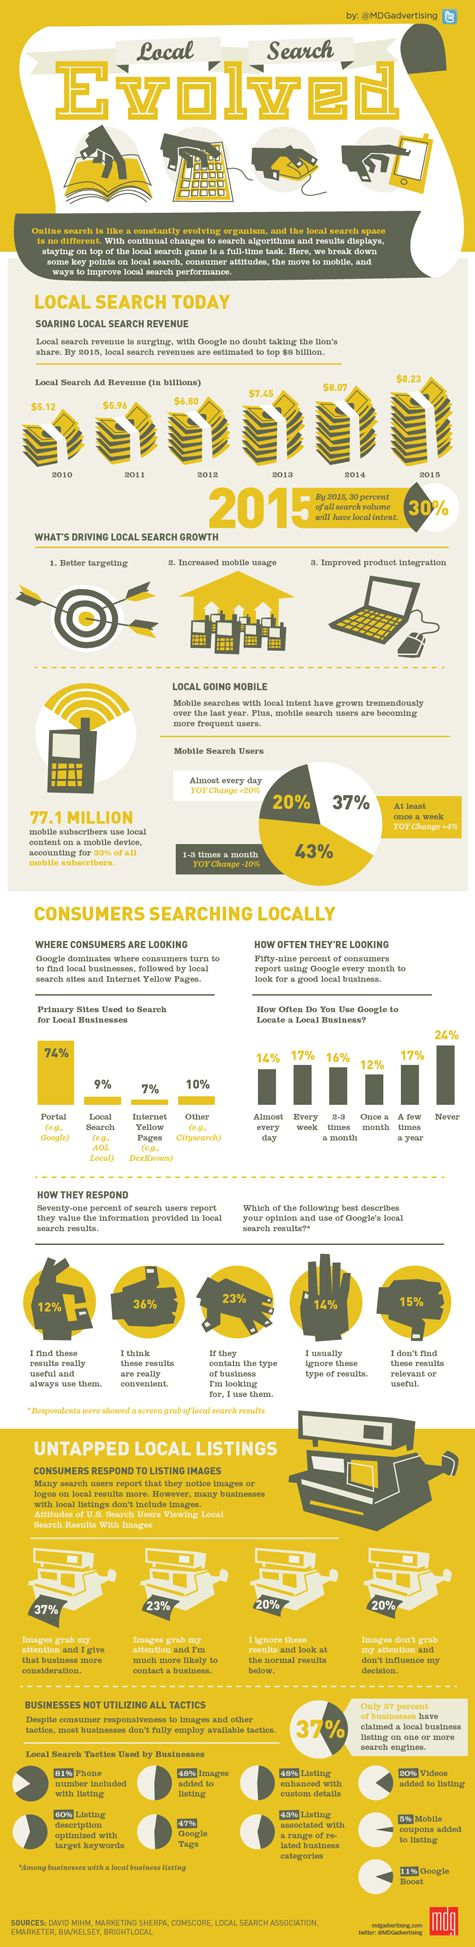 Local Search Evolved. #seo #sem